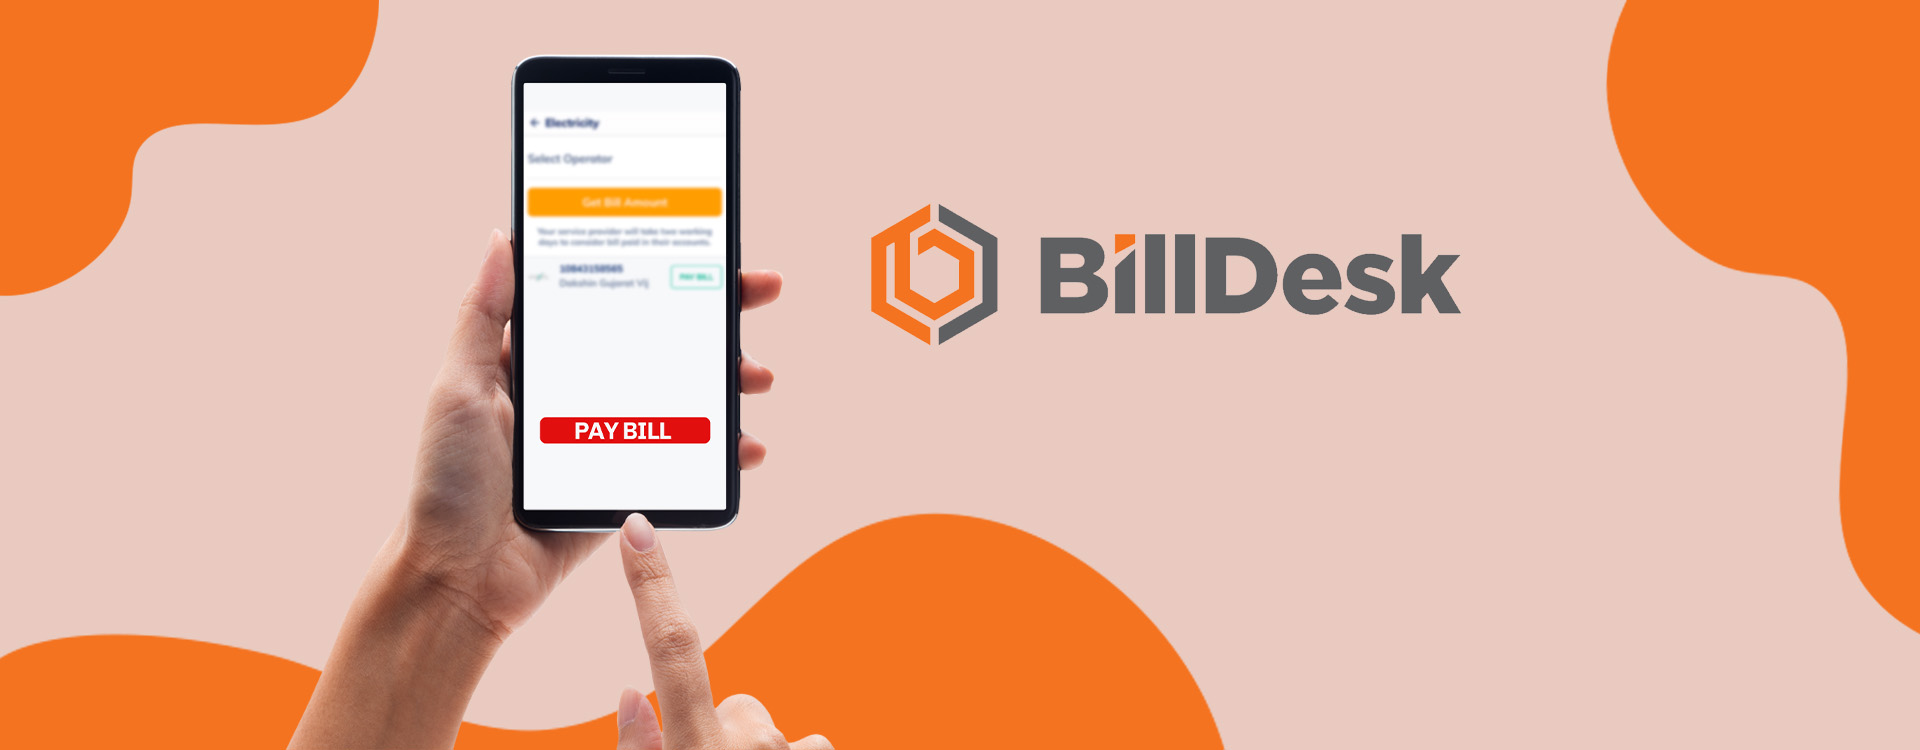 How BillDesk Withstood the Test of Time and Became a Member of the Unicorn Club